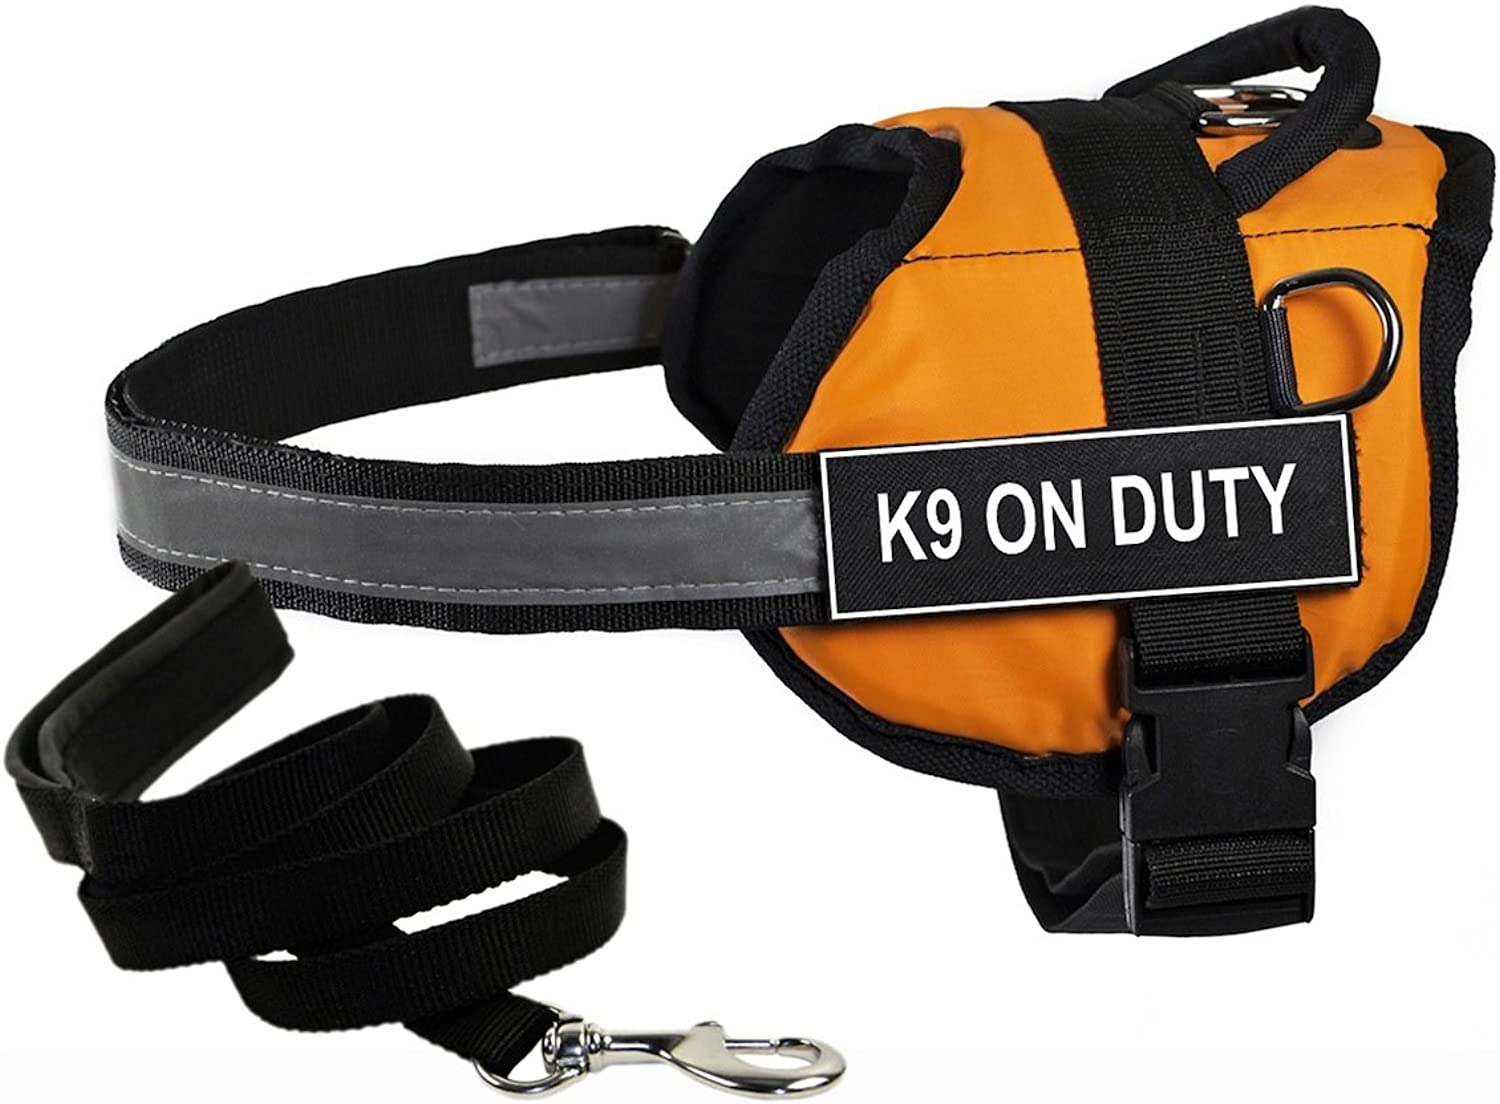 Dean & Tyler's DT Works orange K9 ON DUTY Harness with, Small, and Black 6 ft Padded Puppy Leash.